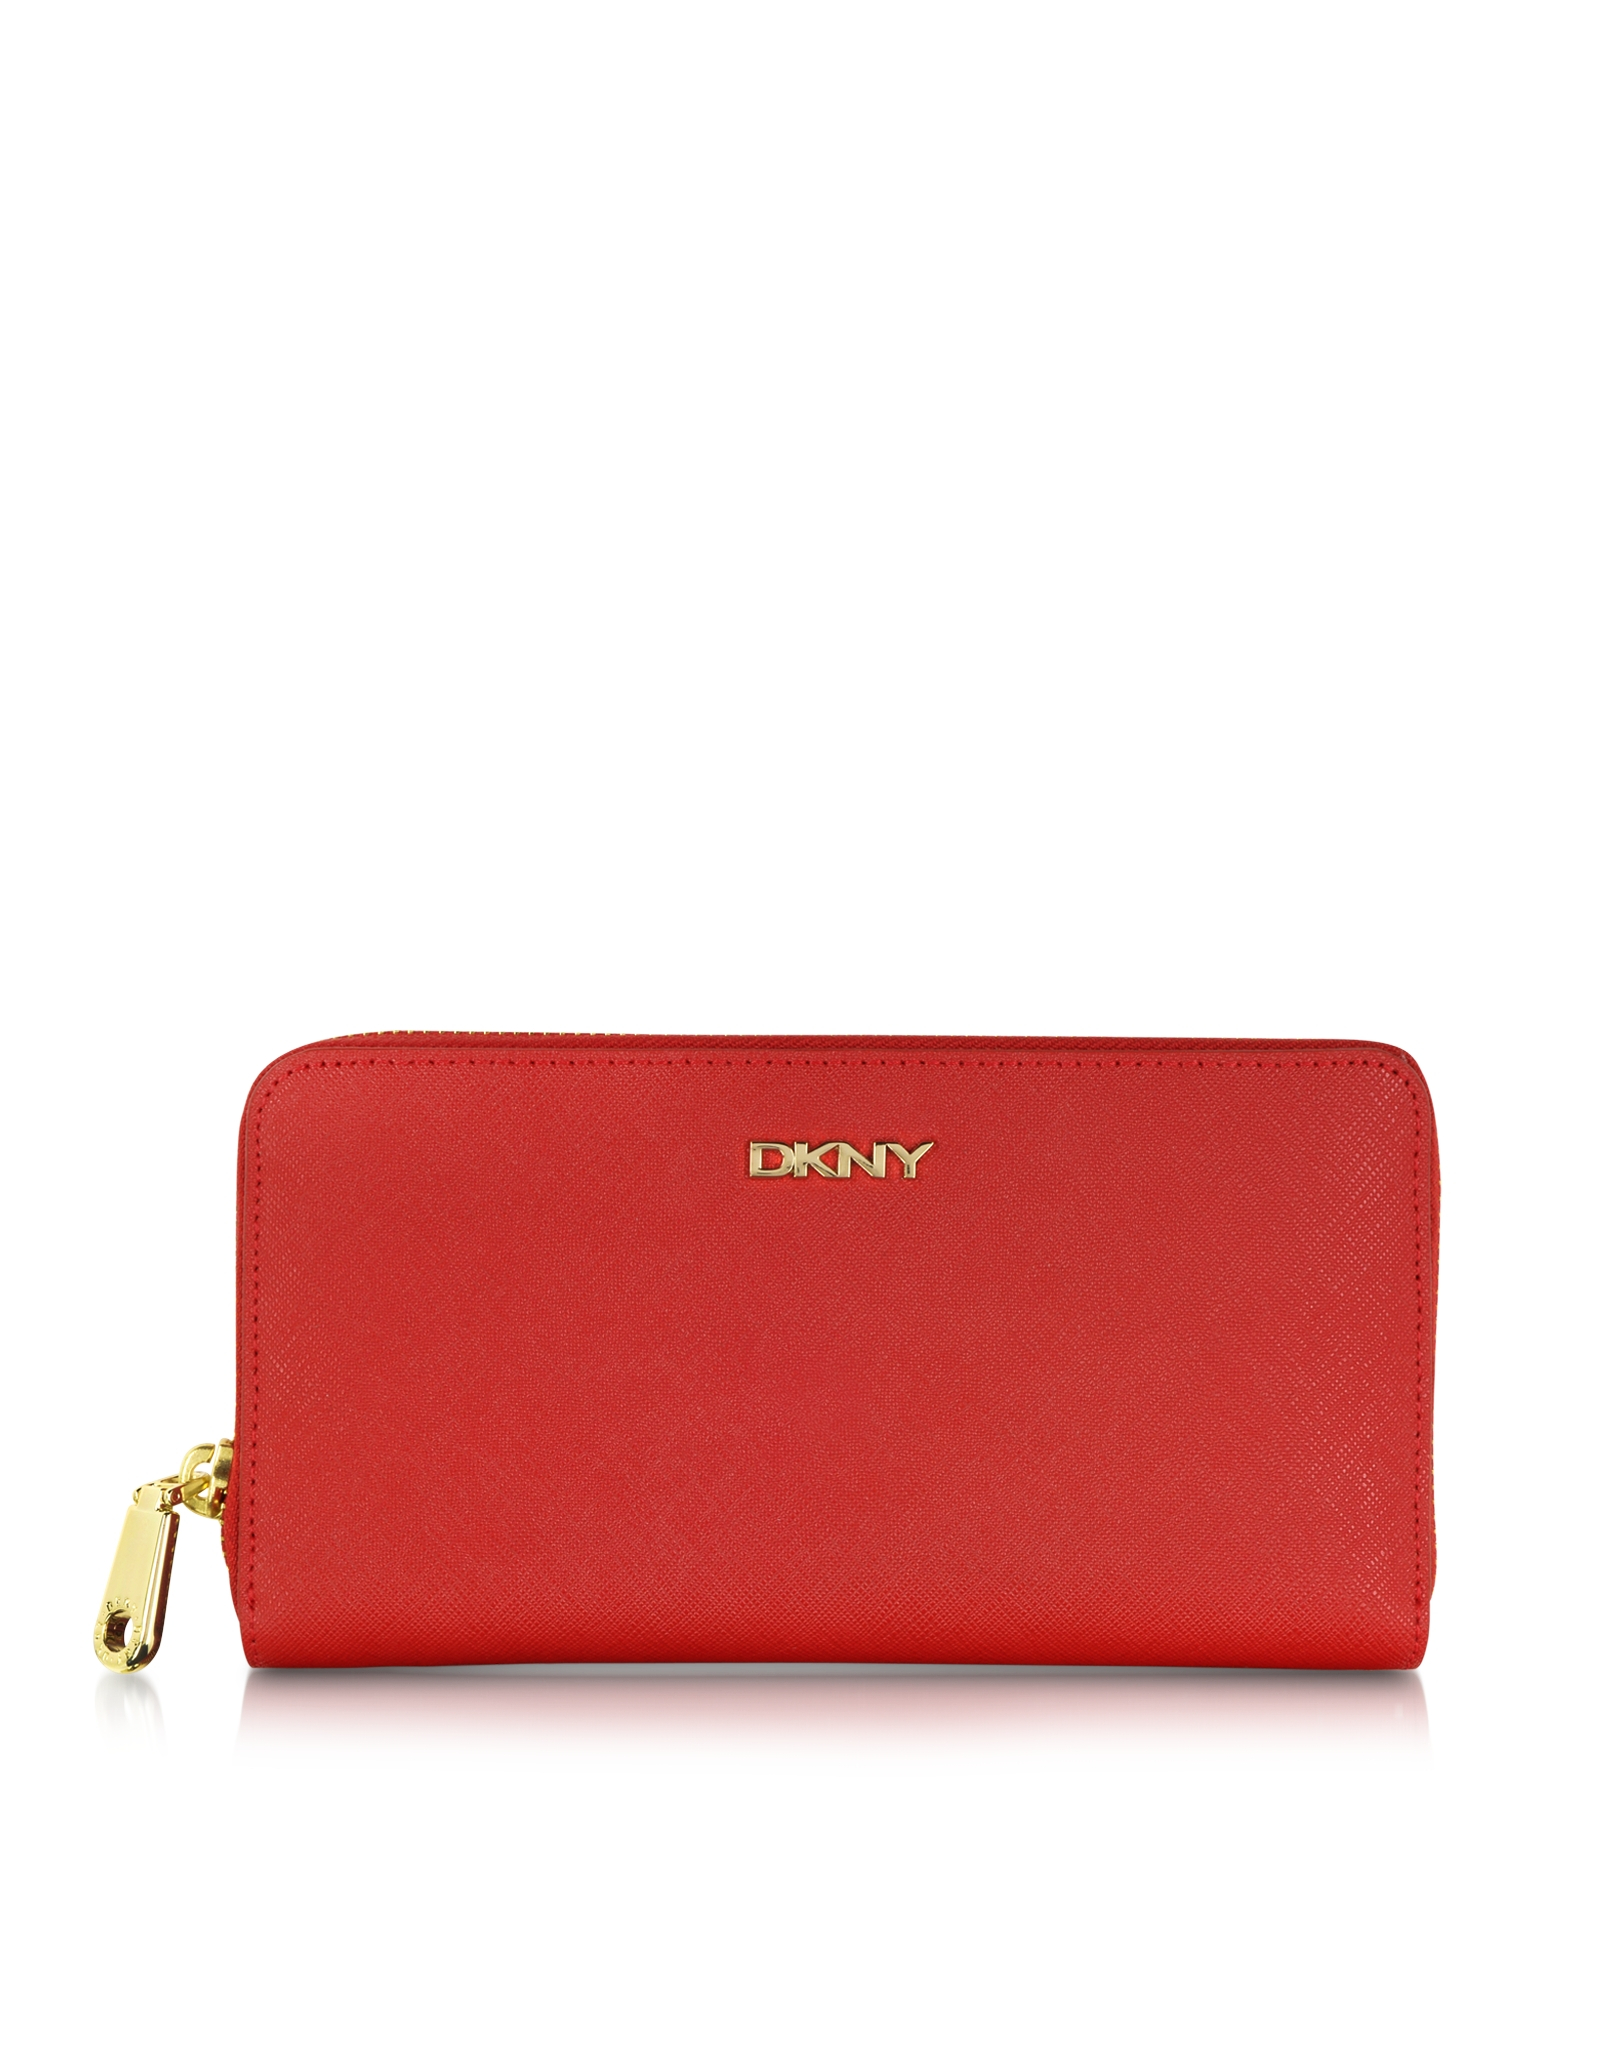 Dkny Saffiano Leather Large Zip Around Wallet in Red | Lyst |Dkny Wallet